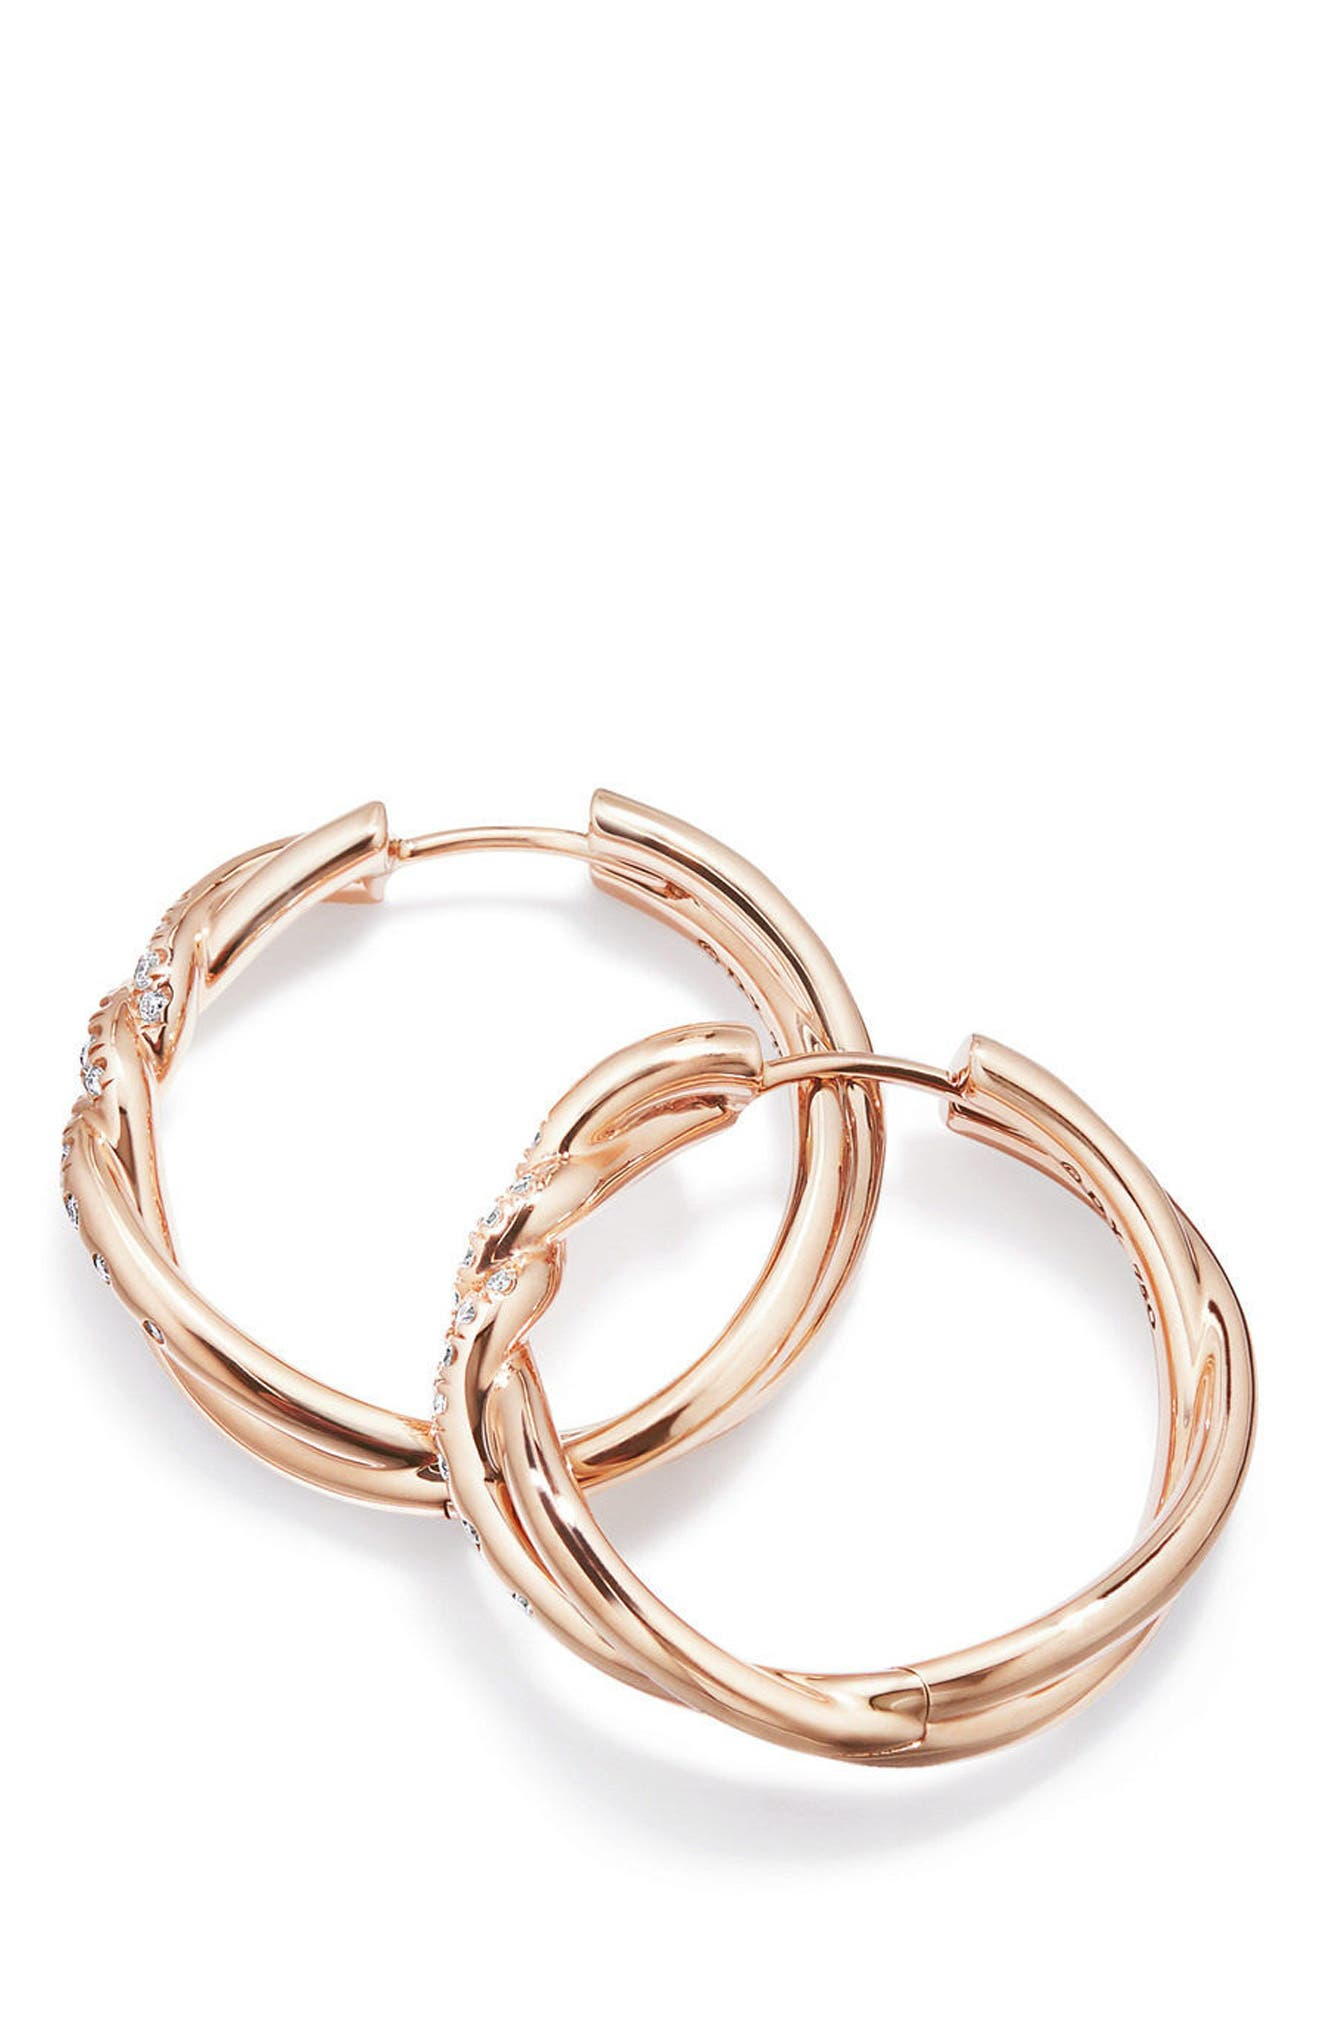 Continuance Hoop Earrings,                         Main,                         color, Rose Gold/ Diamond